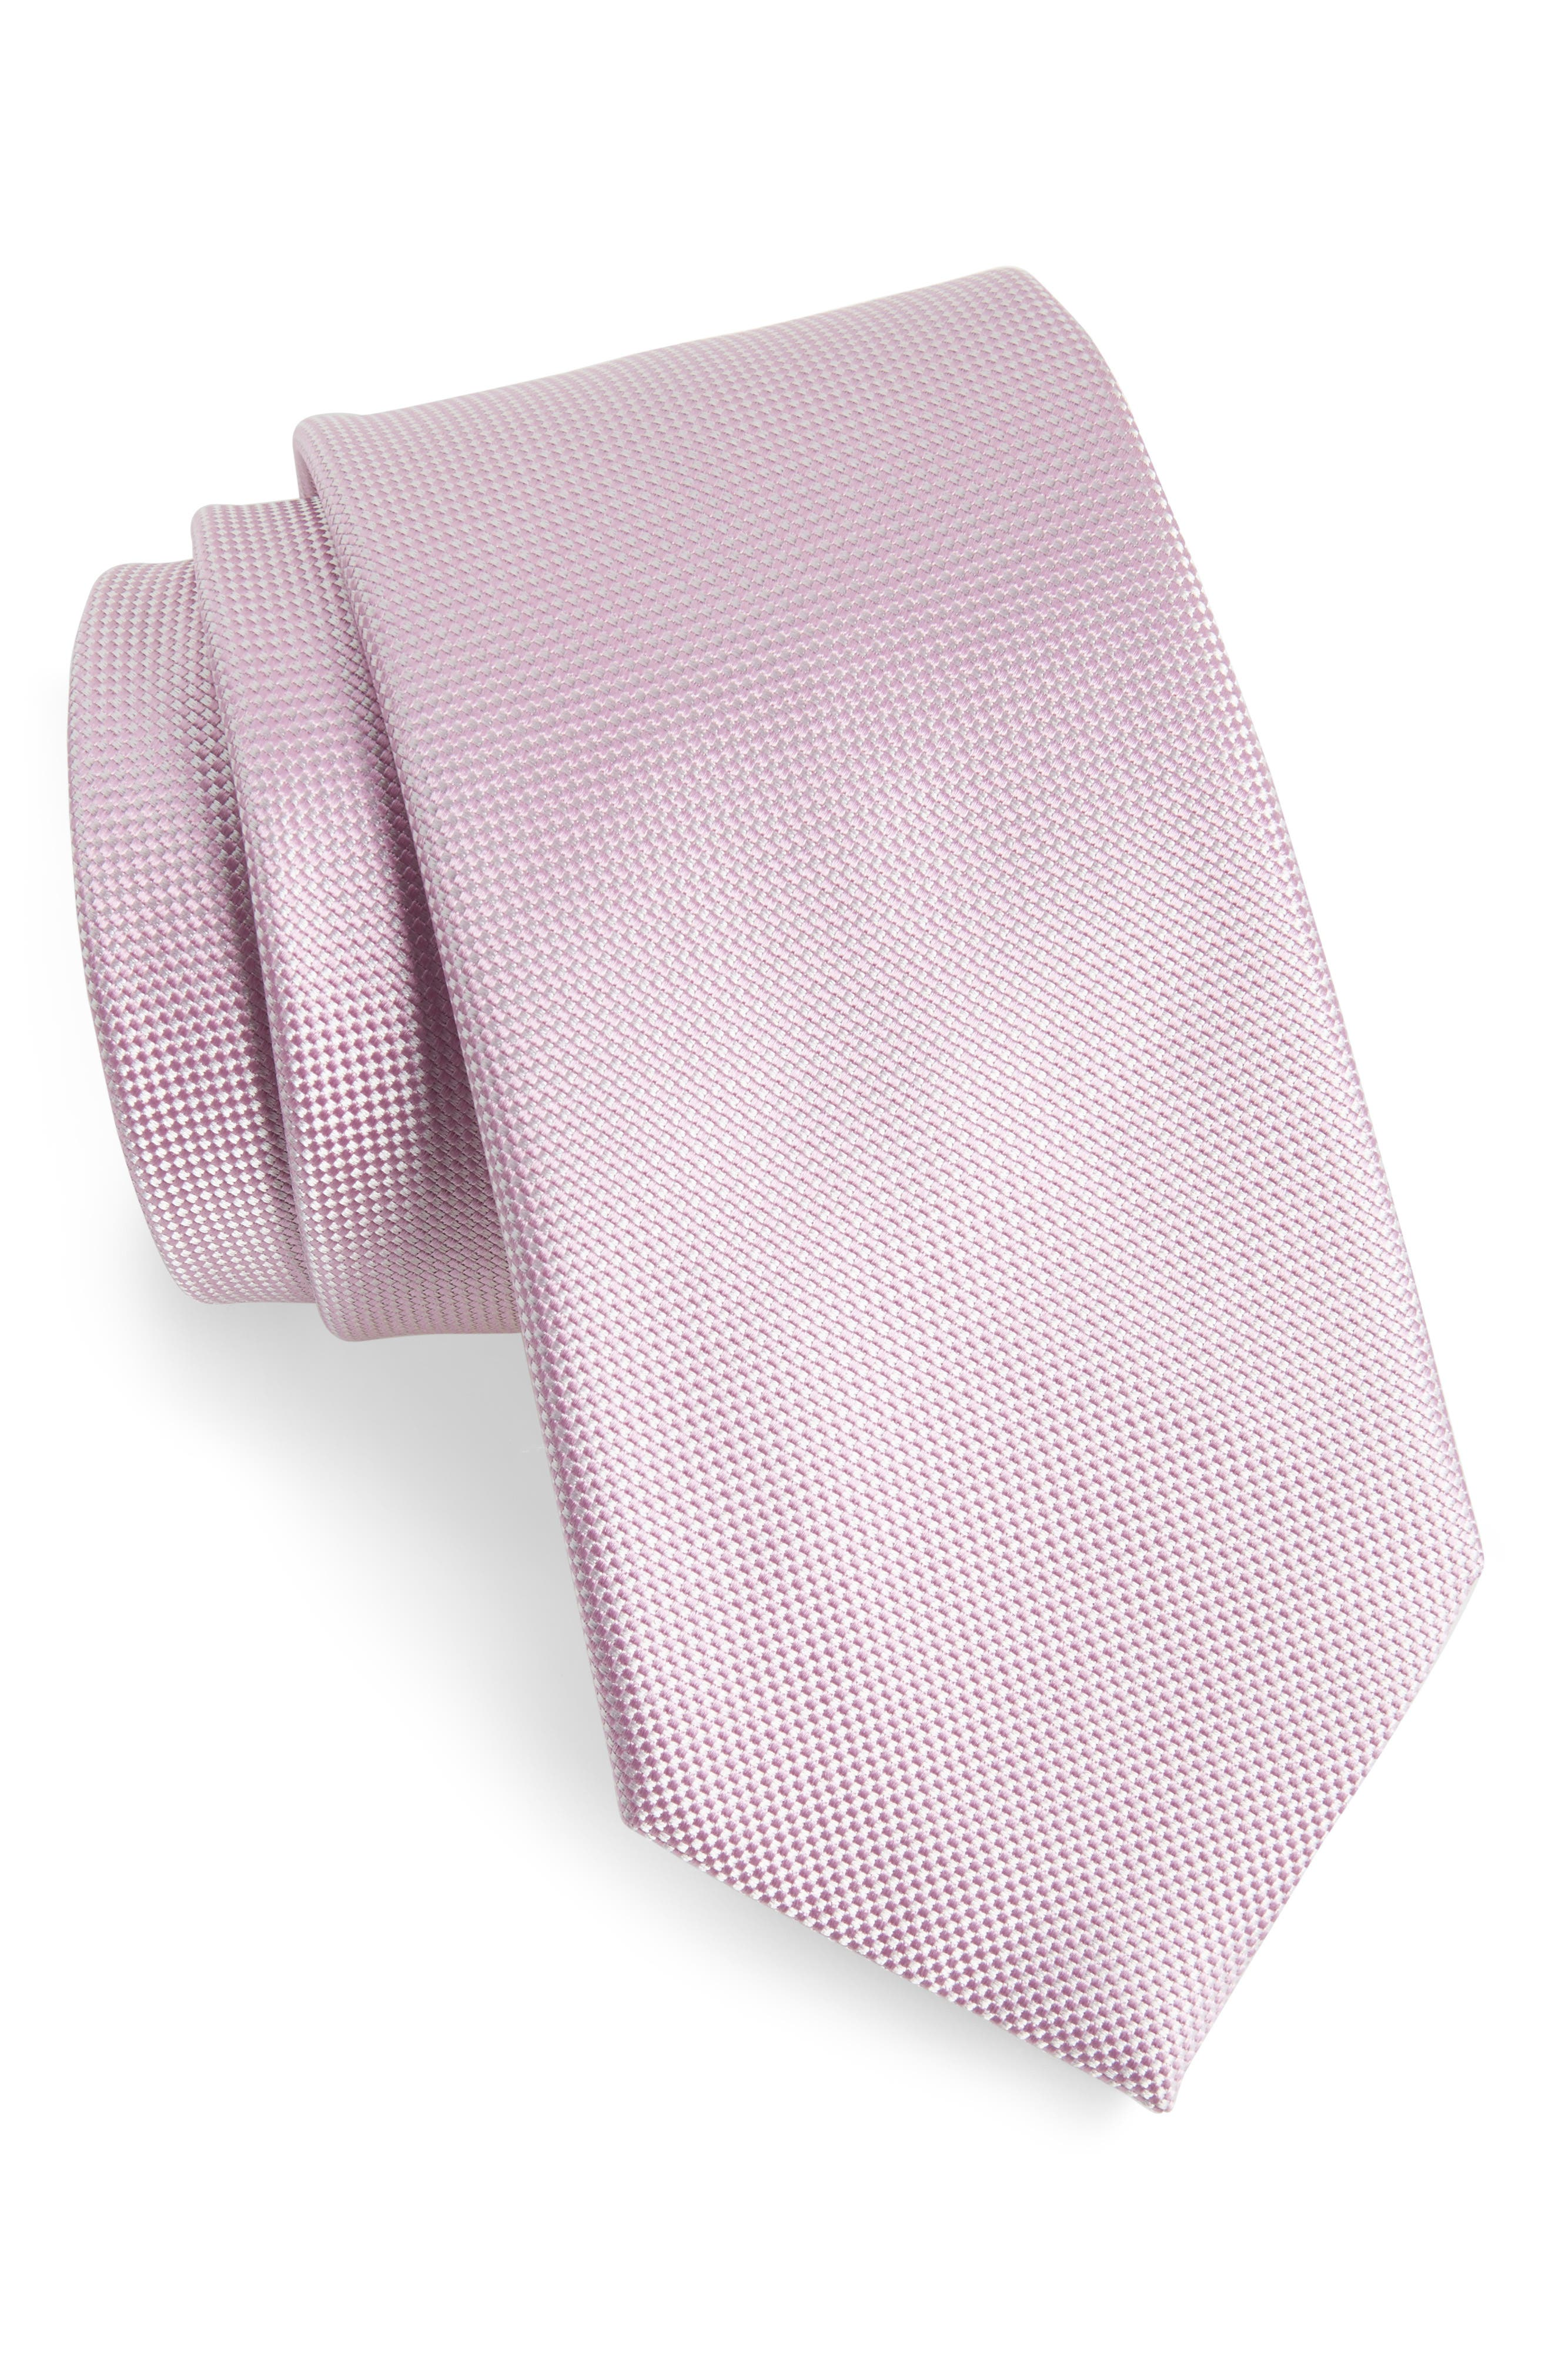 Solid Silk Tie,                             Main thumbnail 10, color,